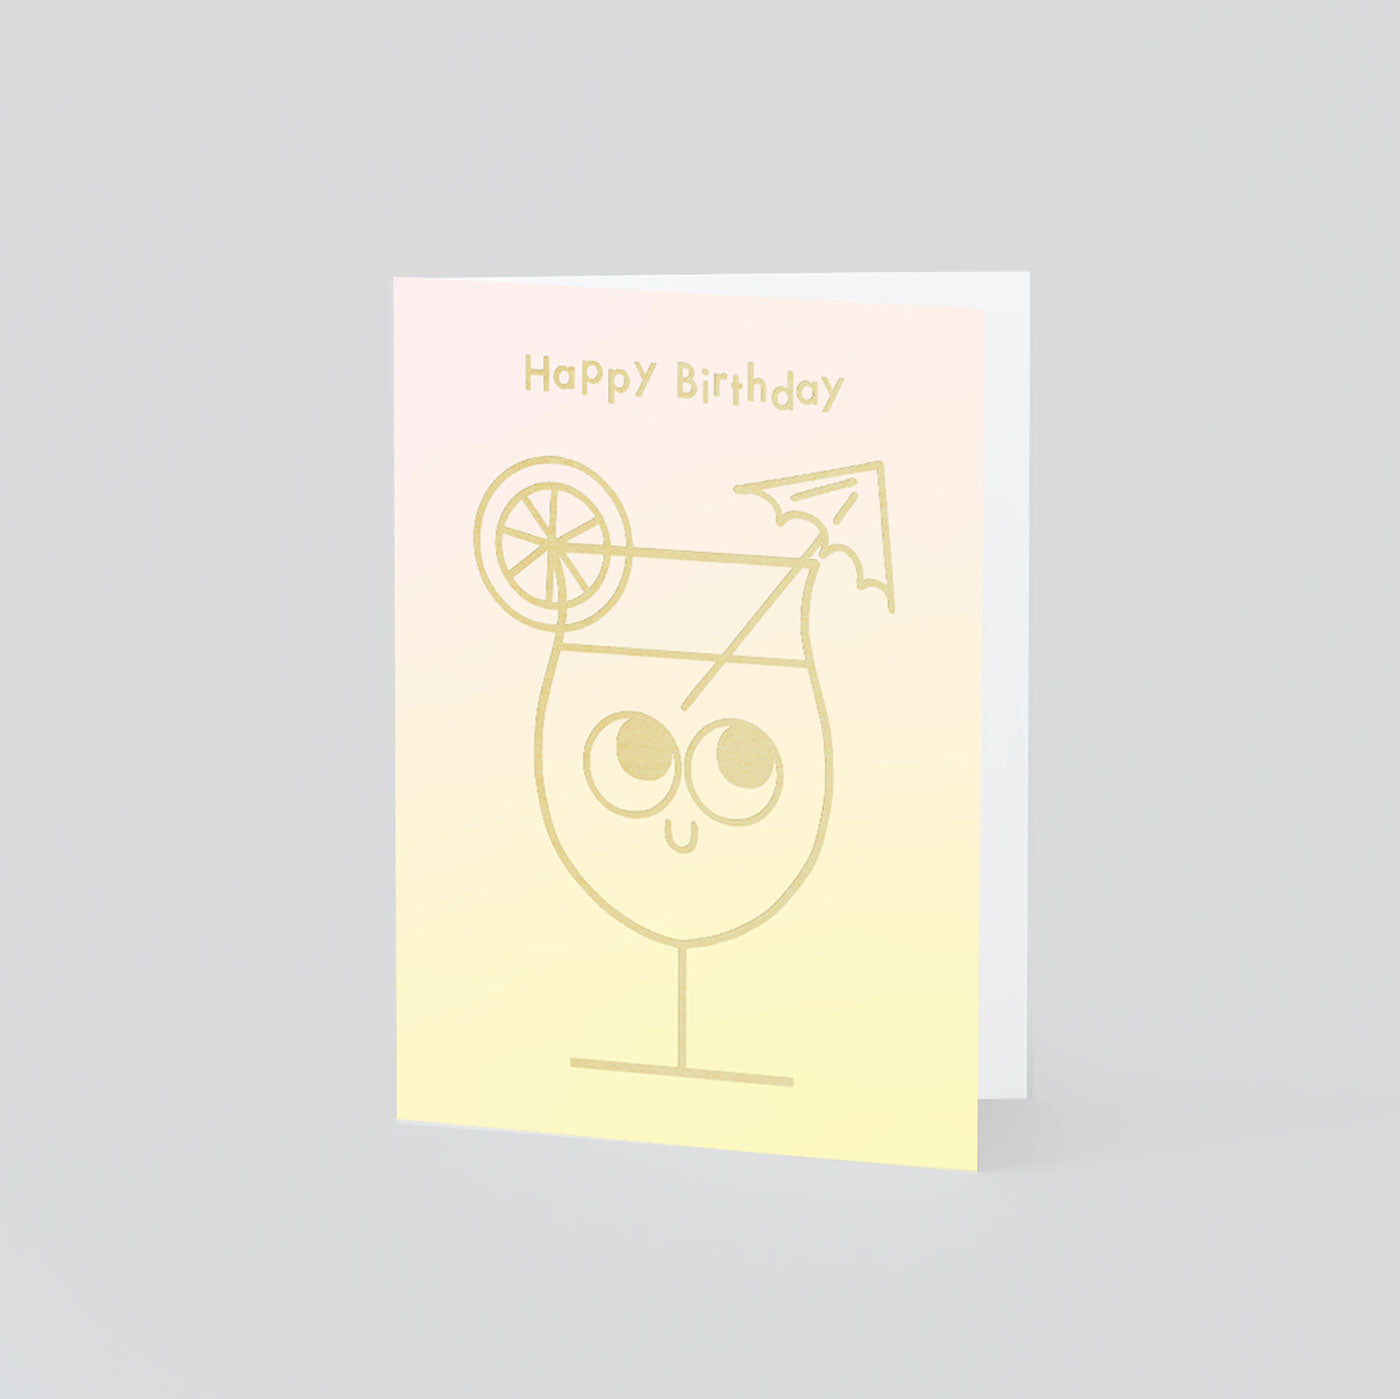 Elliot Kruszynski For Wrap - Happy Birthday Cocktail